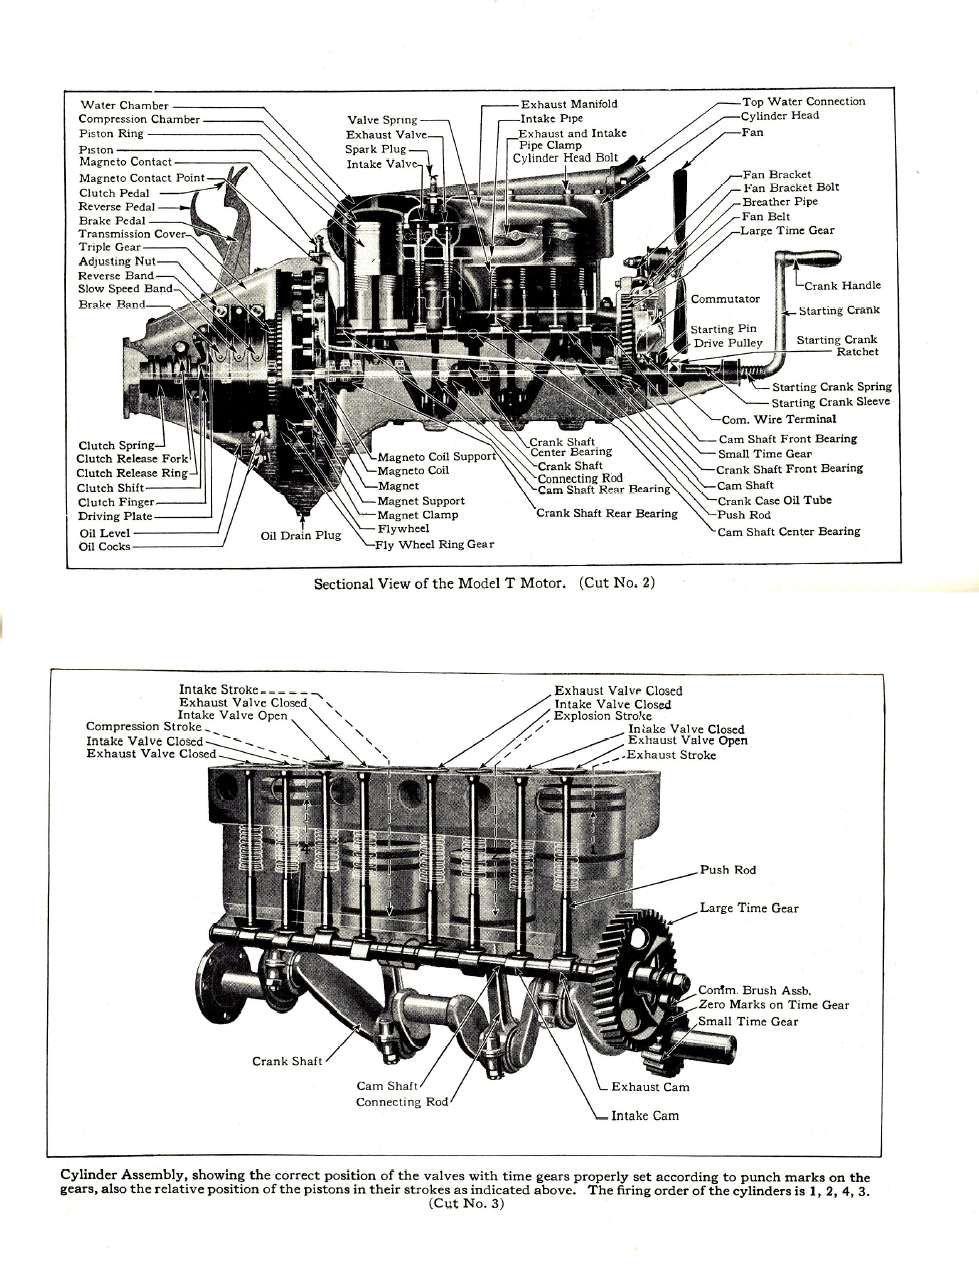 model t ford forum engine schematics for school project [ 979 x 1284 Pixel ]